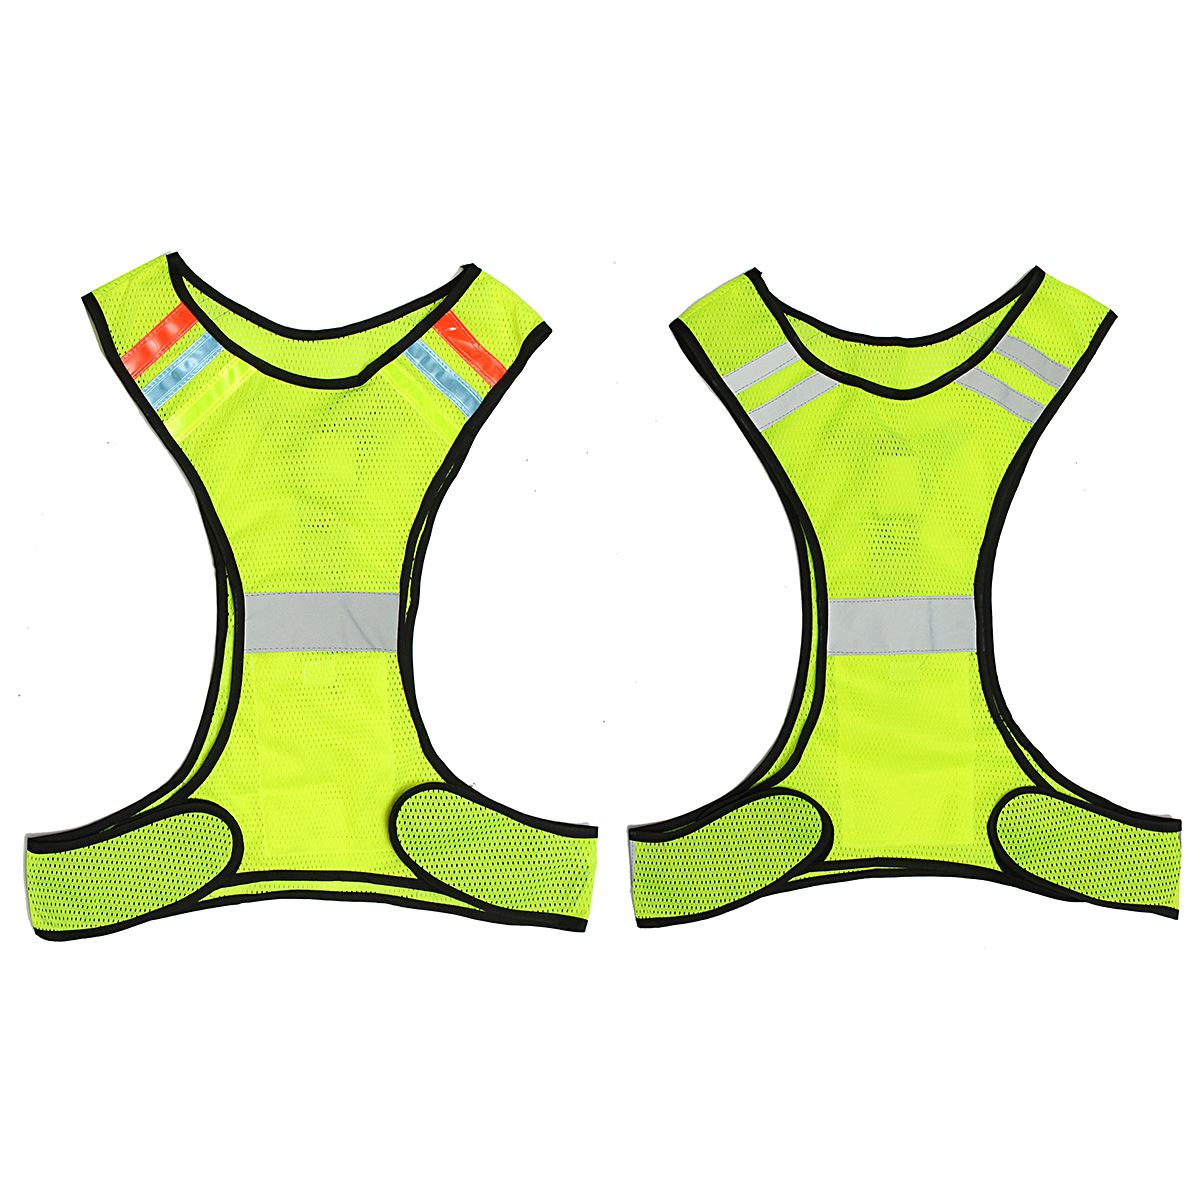 LED Reflective Safety Vest for Night Running Cycling Breathable High Visibility new style breathable mesh high visibility reflective traffic safety cycling vest printable words logo